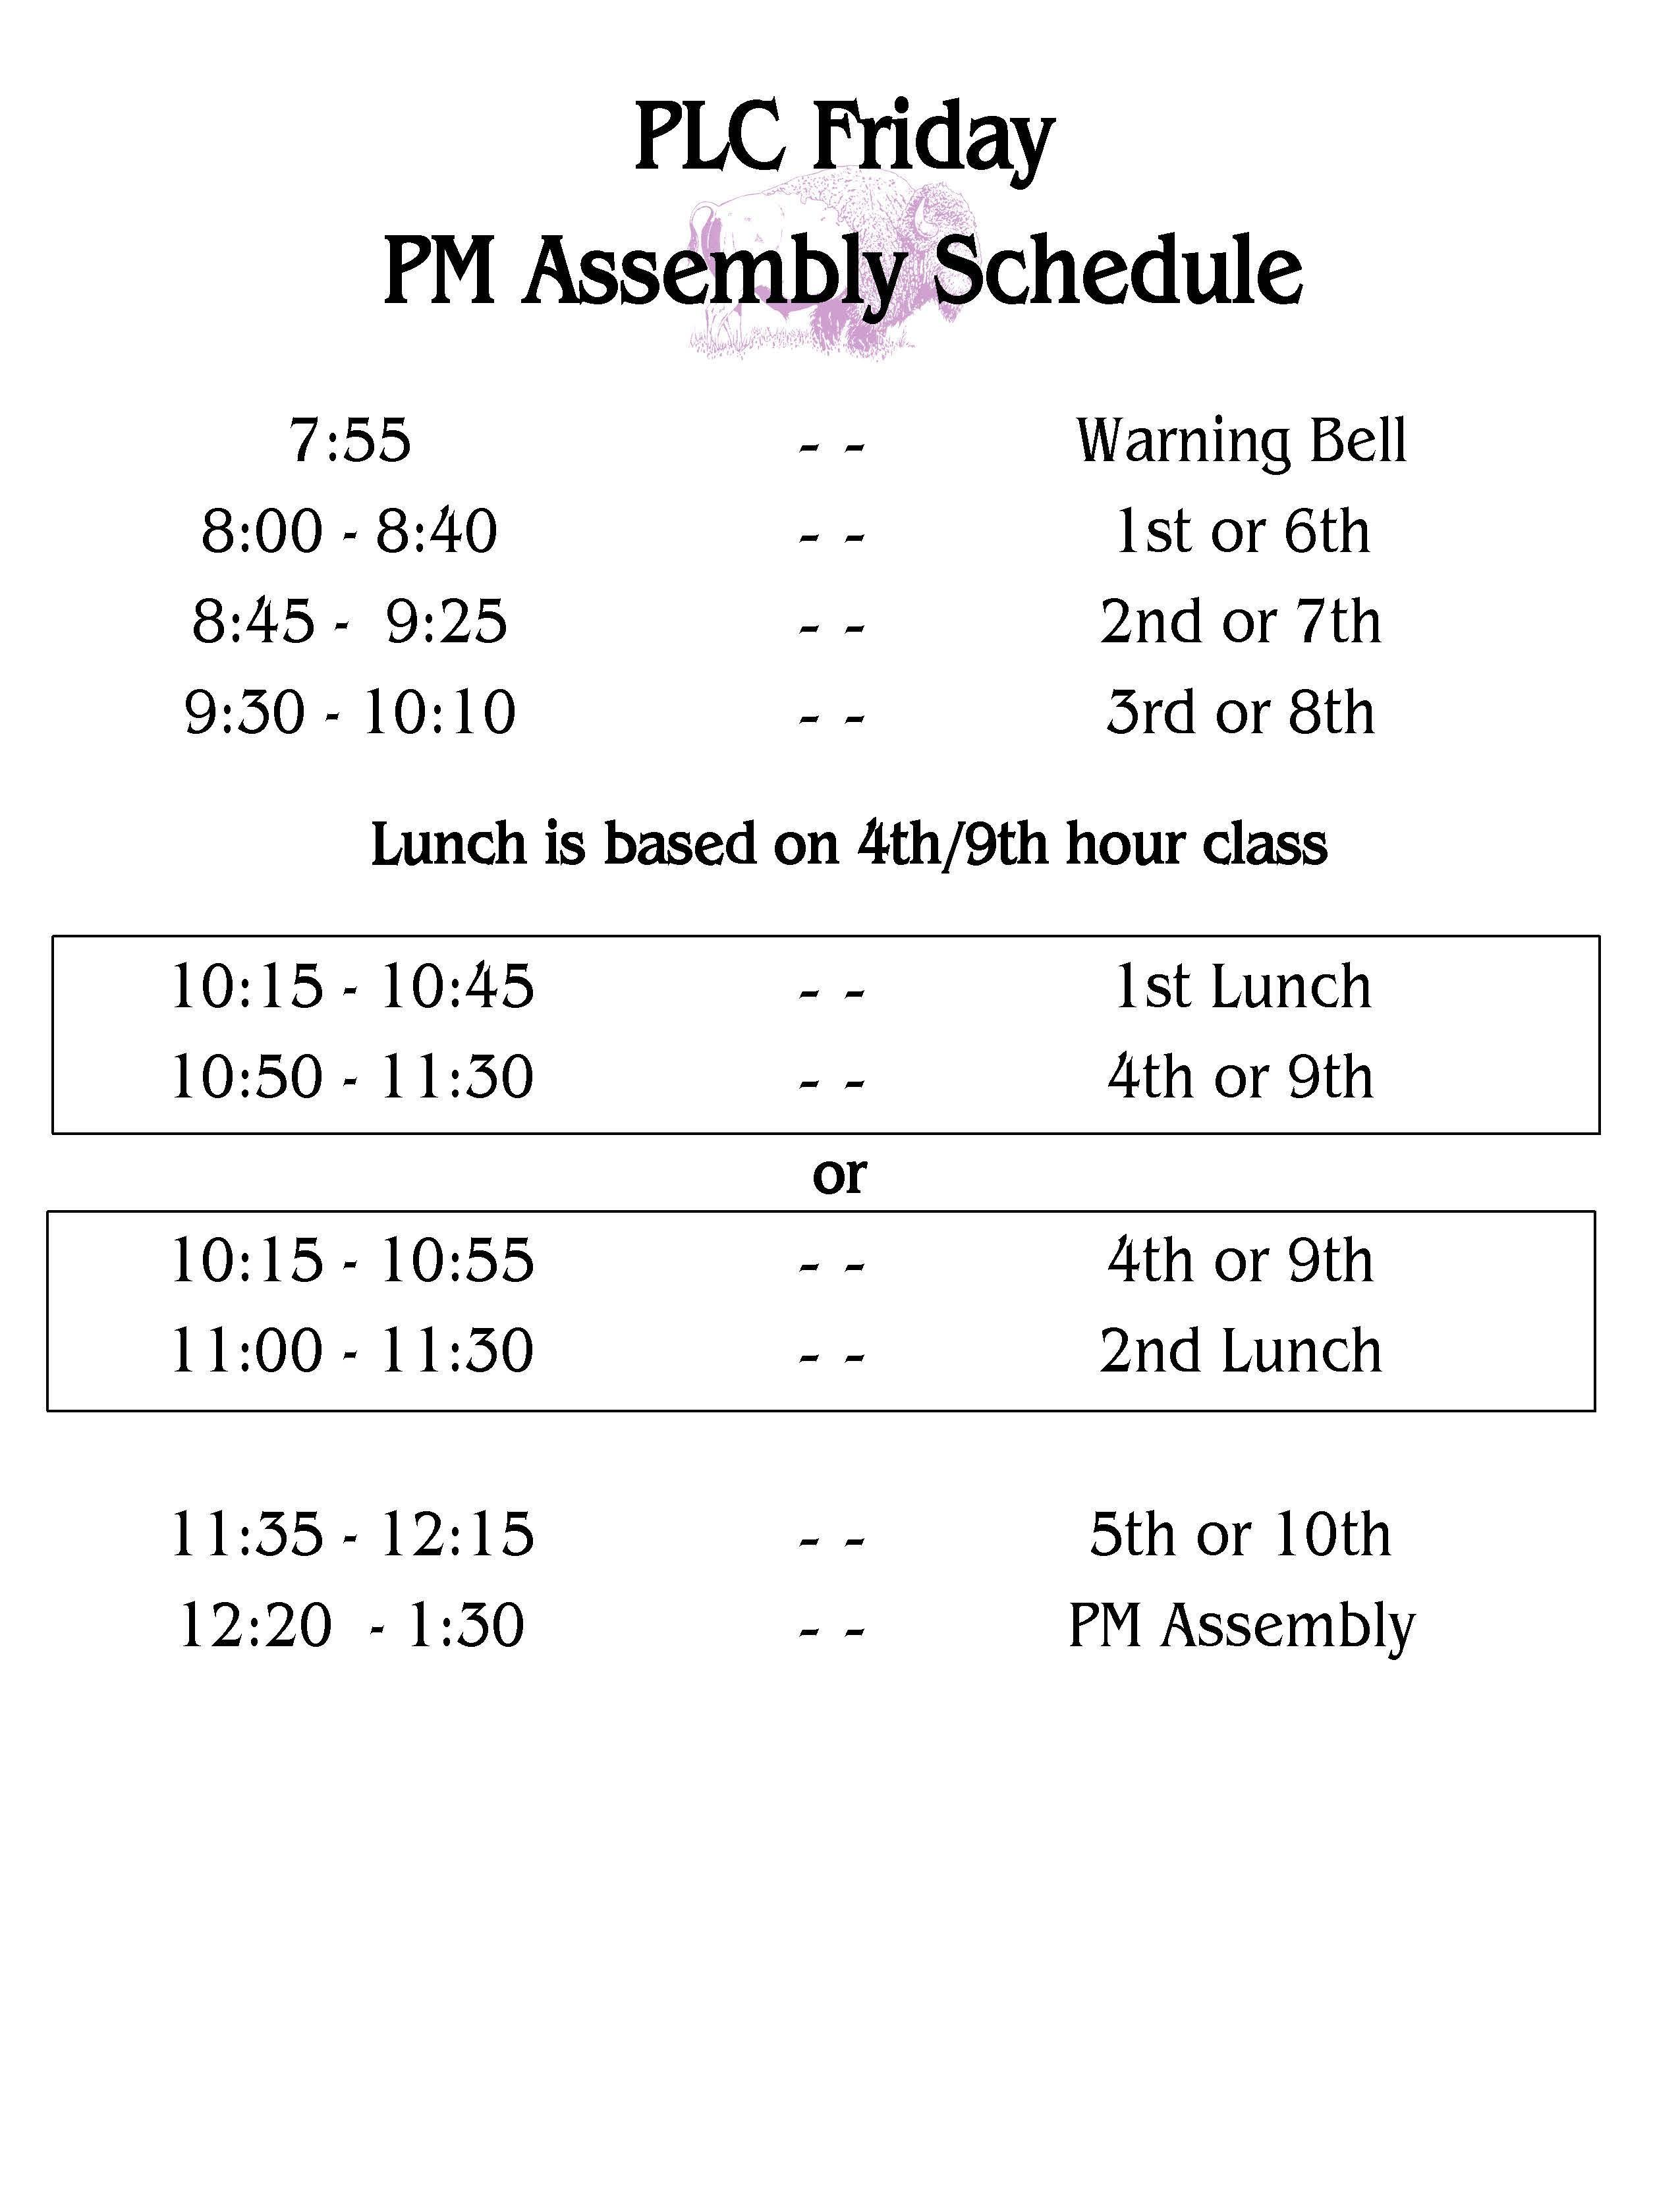 Friday PM Assembly schedule